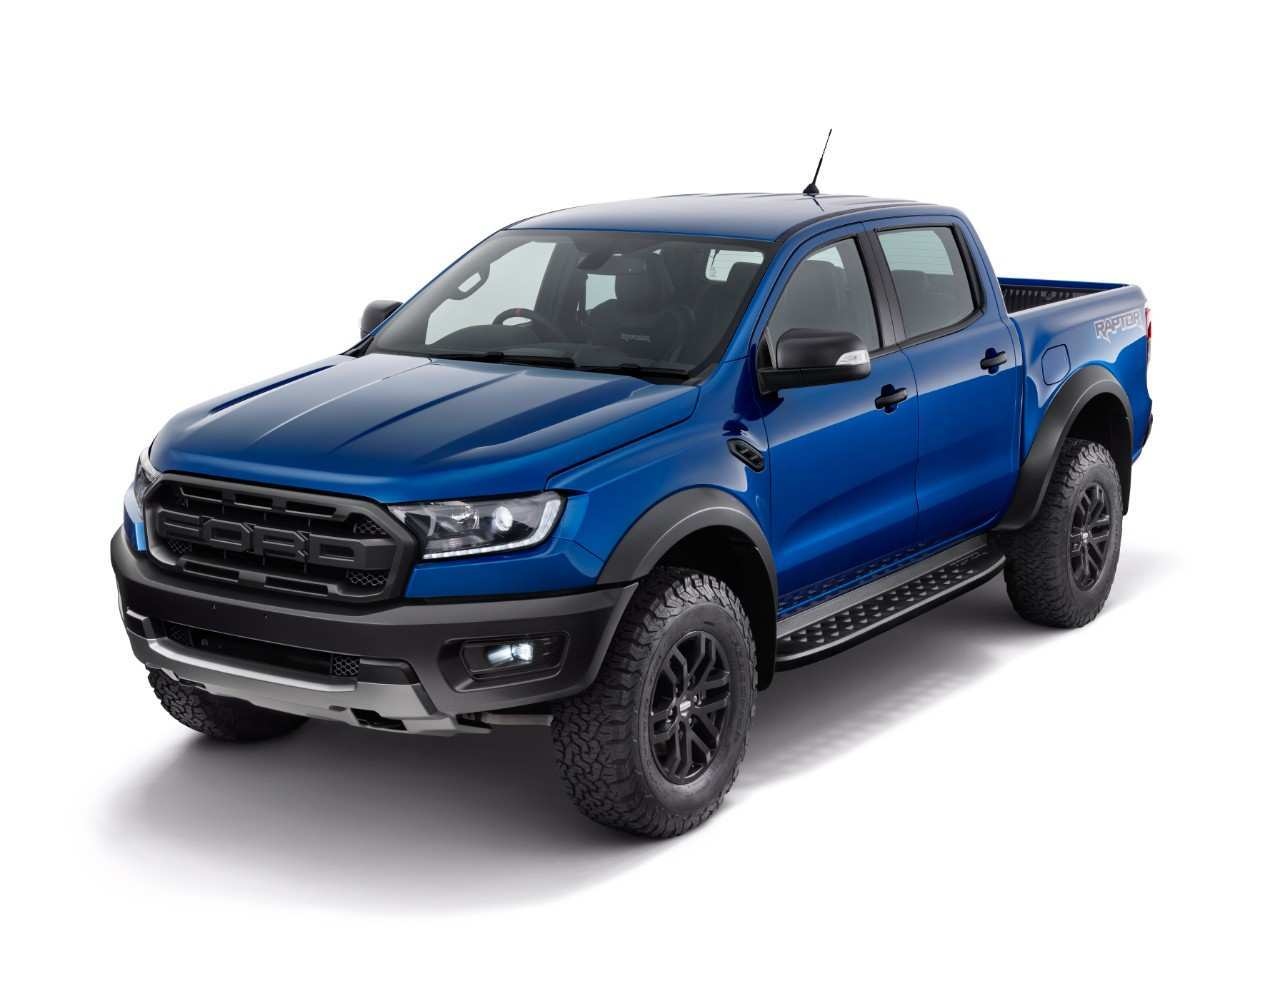 35 All New Ford Ranger Raptor 2020 Engine with Ford Ranger Raptor 2020